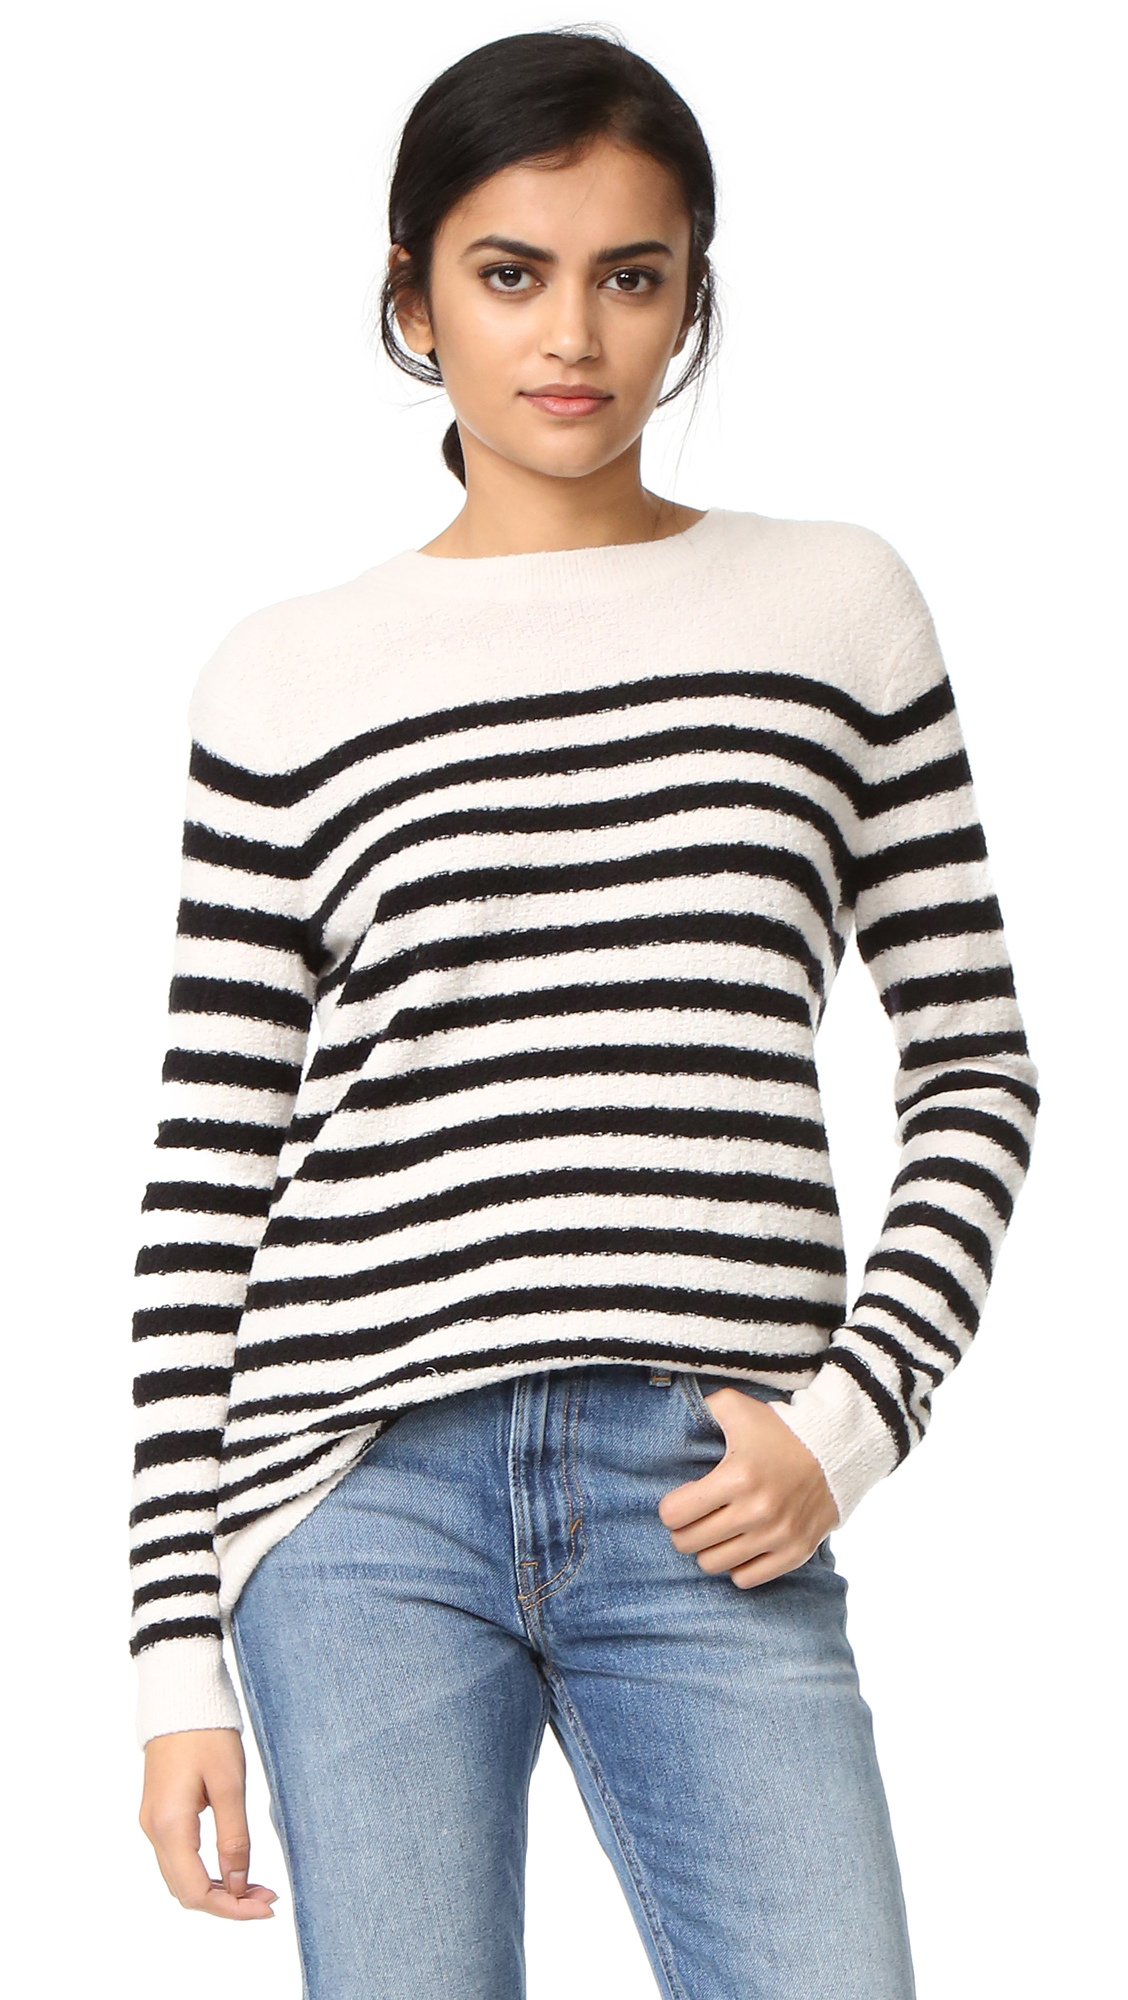 Vince Engineered Striped Pullover - Off White/Black at Shopbop